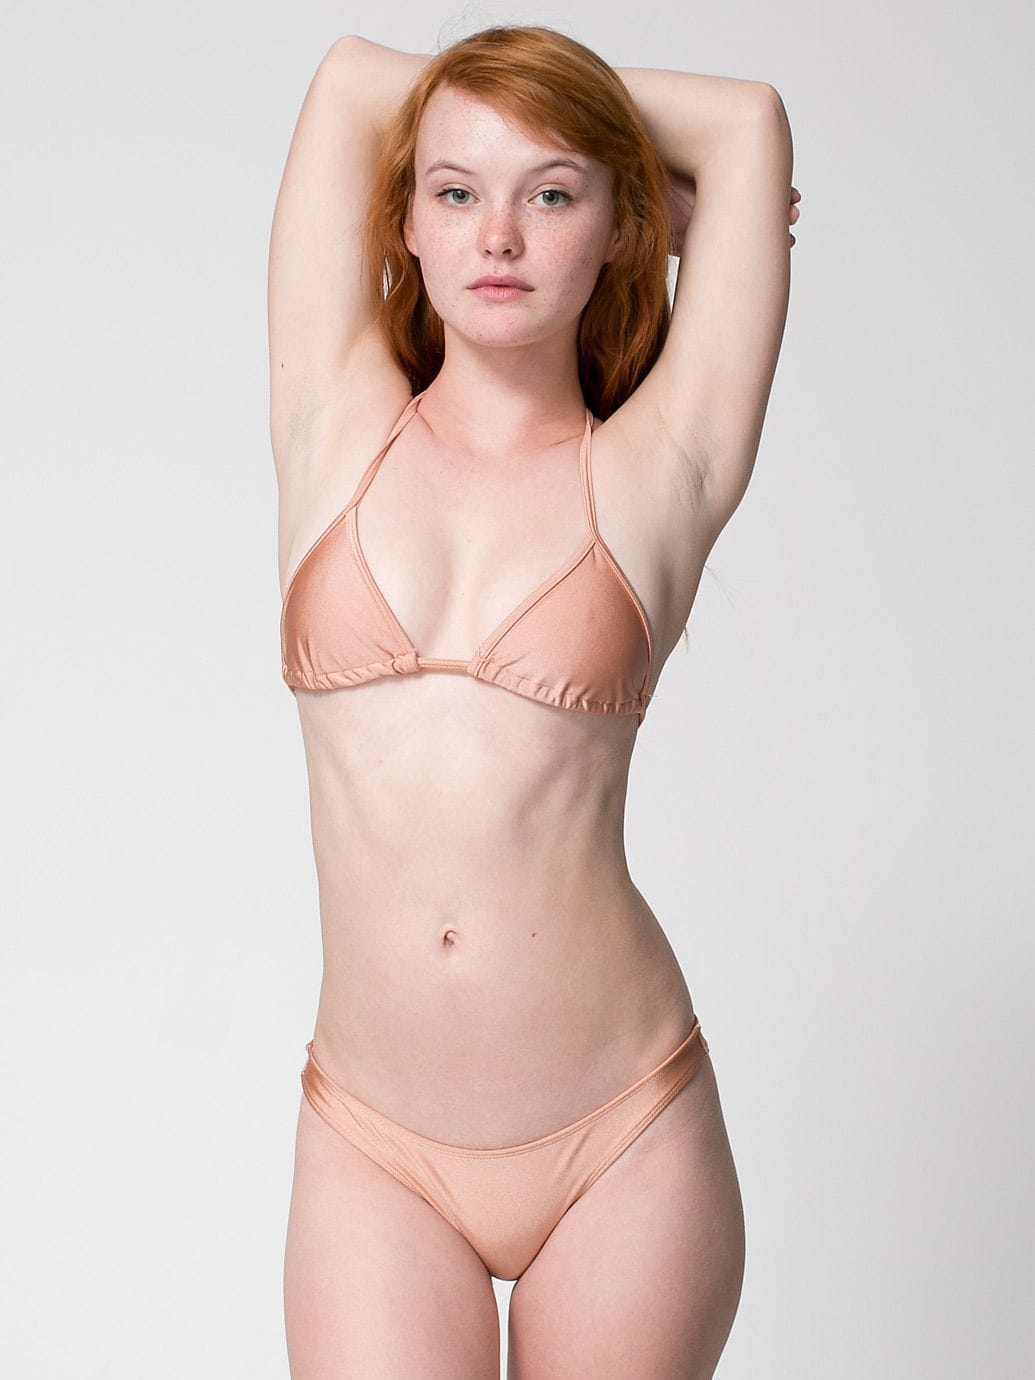 Kacy anne hill model